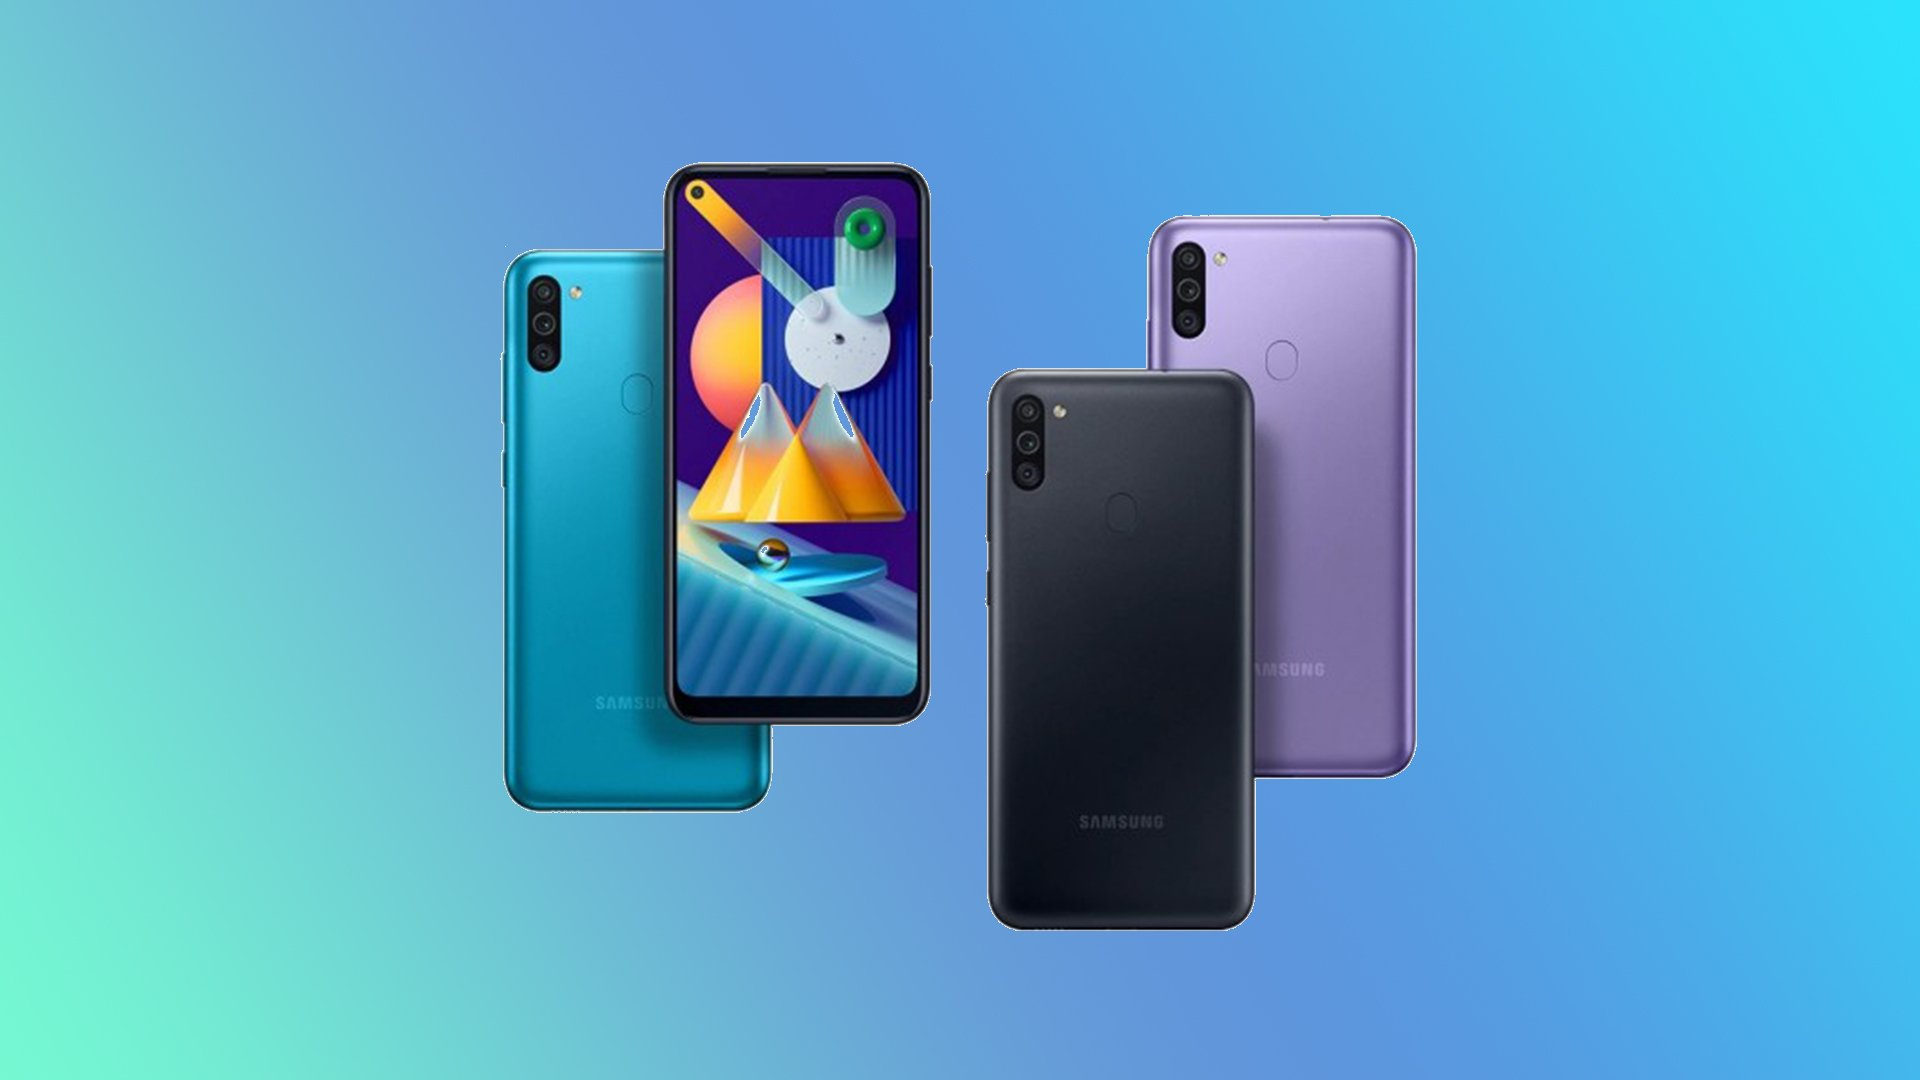 Samsung launches Galaxy M01 and Galaxy M11 in India - SamMobile